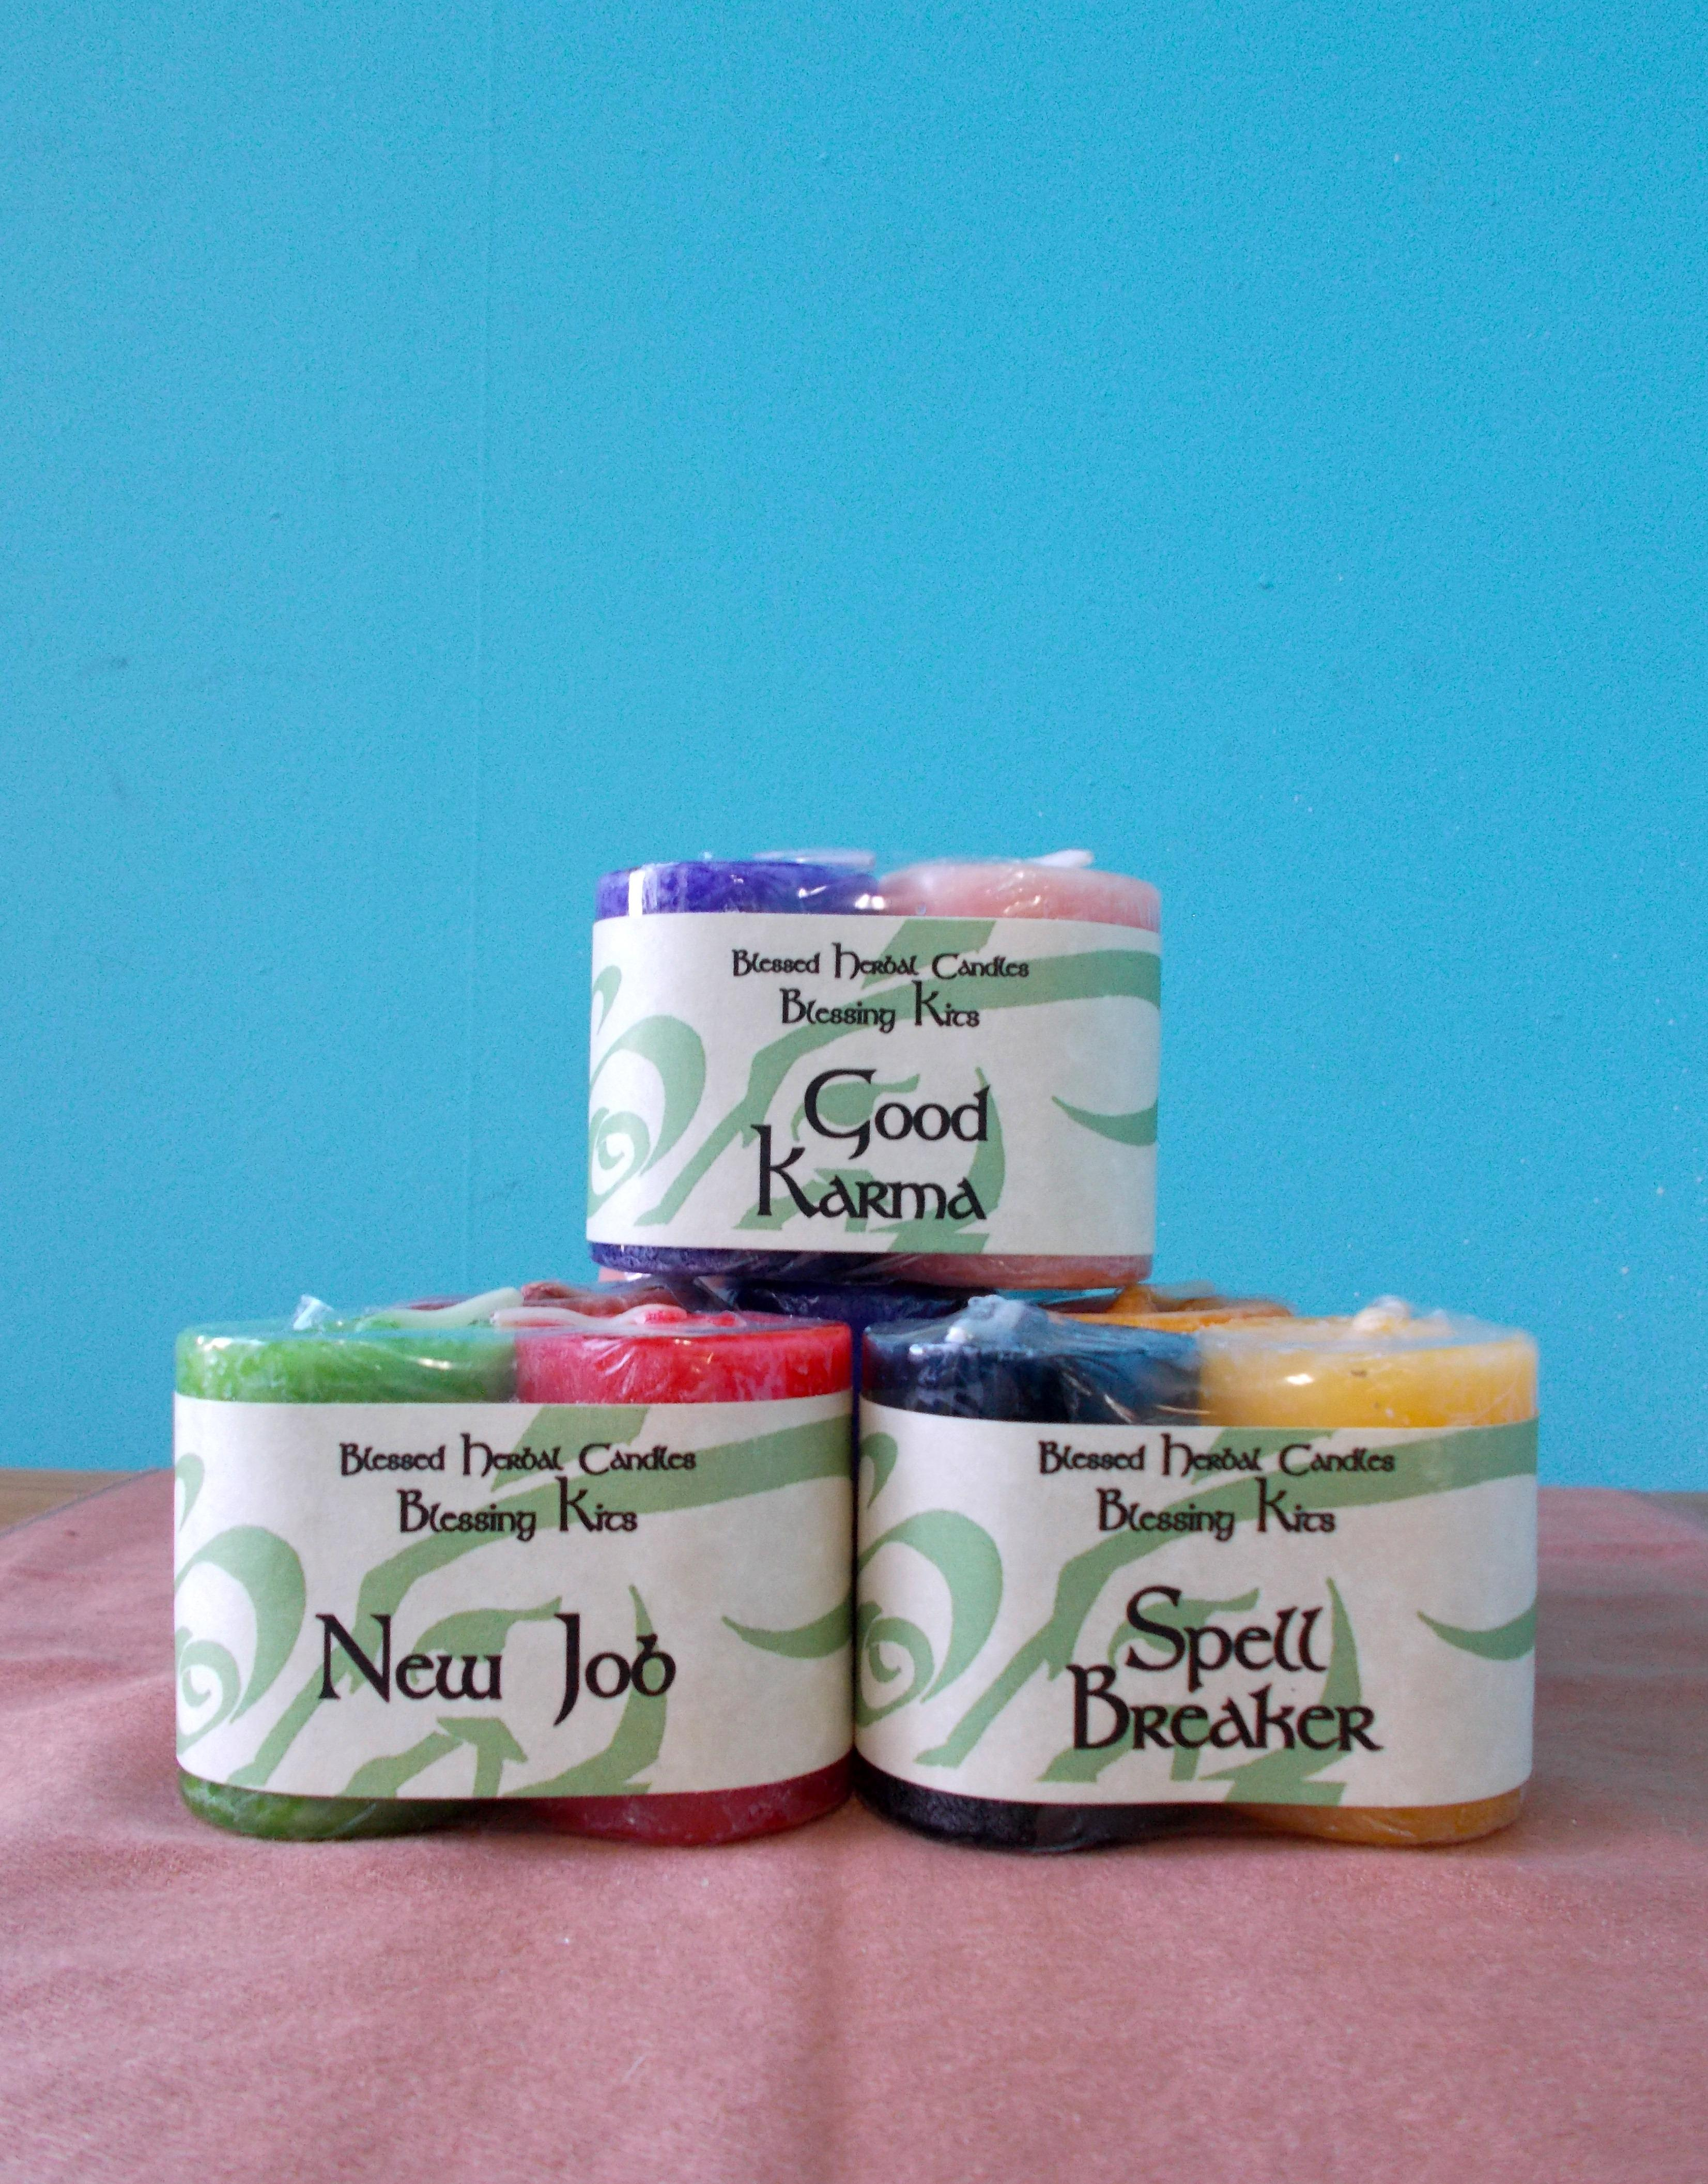 Blessed Herbal Candle Blessing Kits - Correct Choice